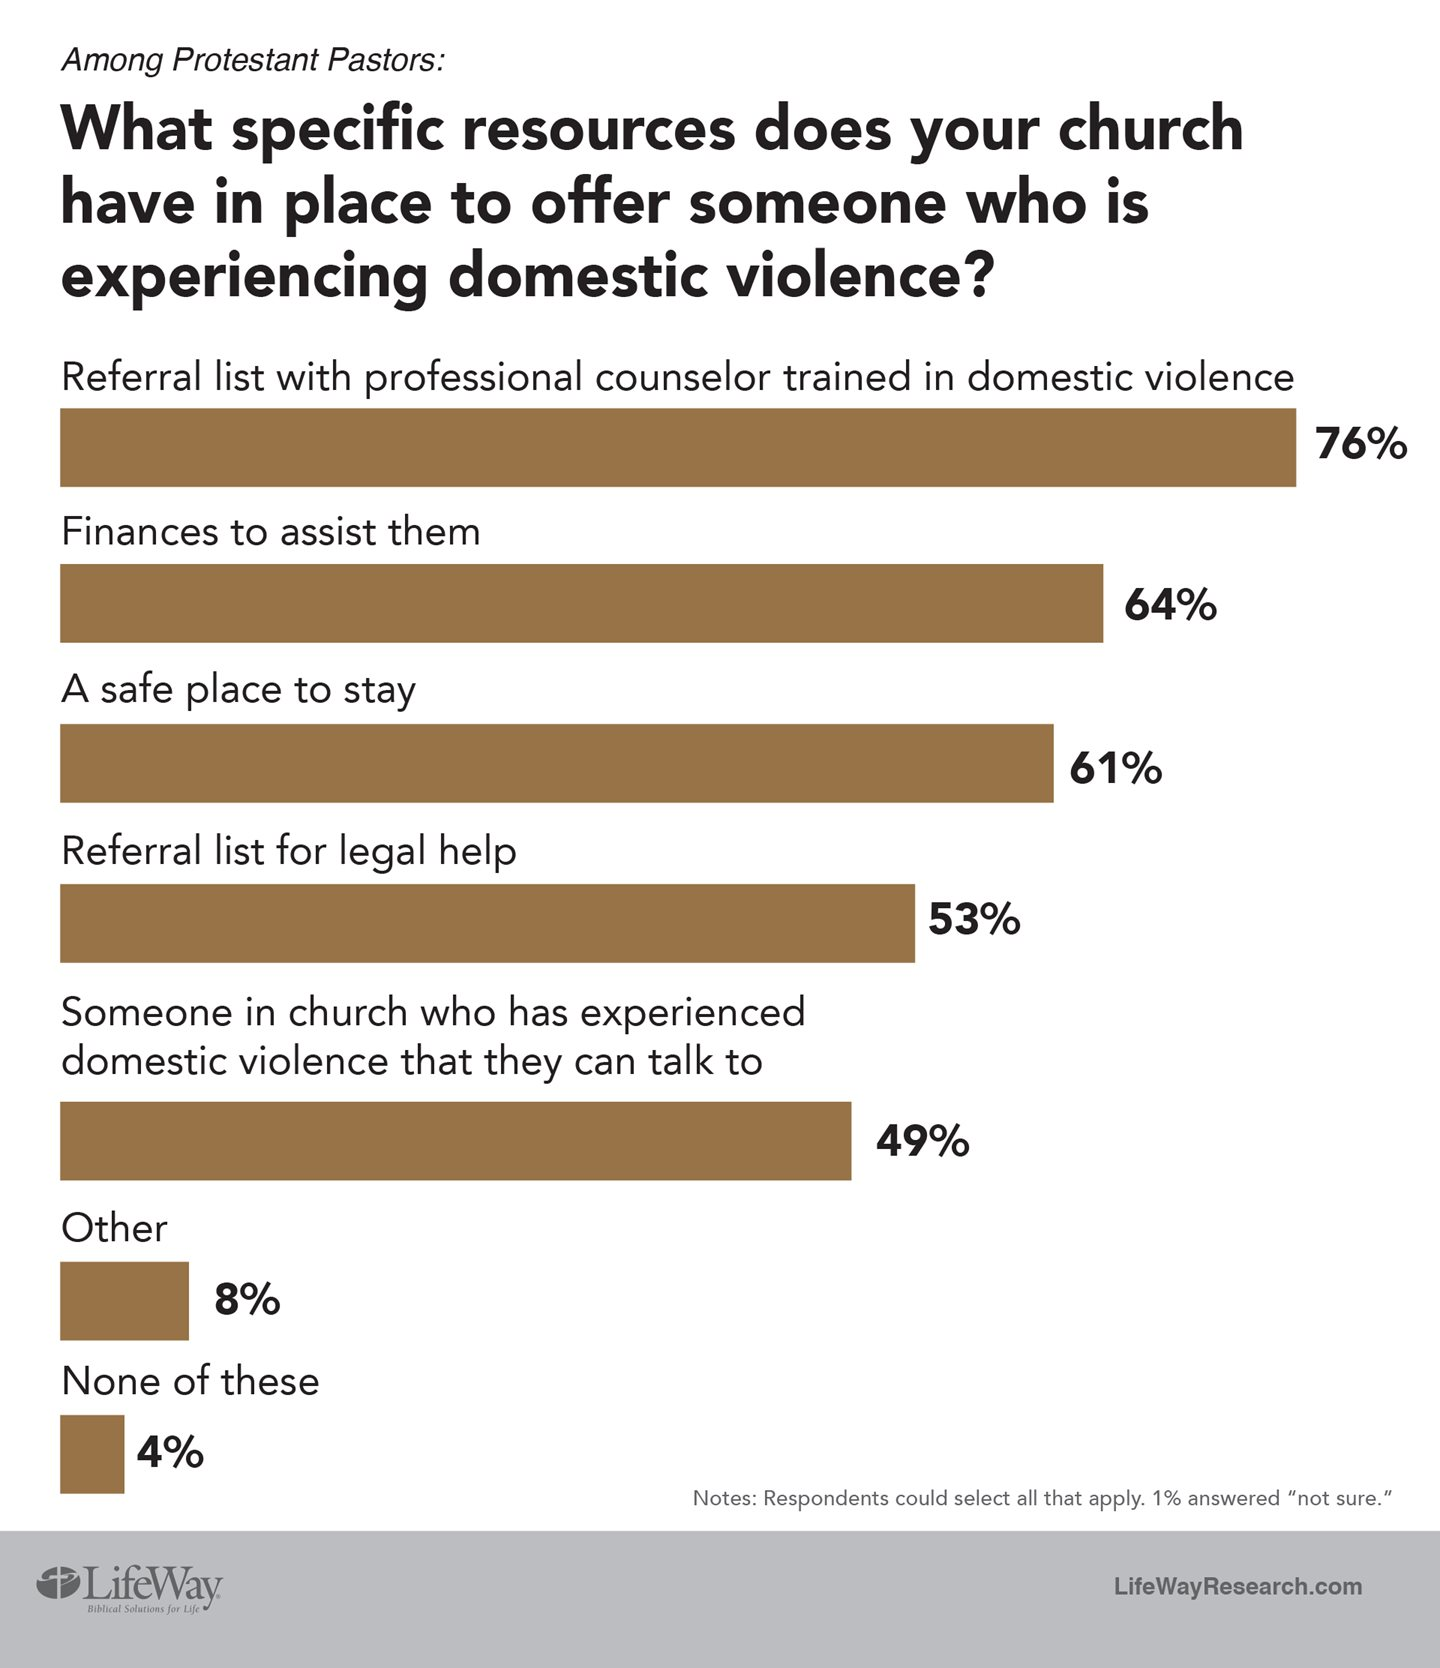 How Pastors Perceive Domestic Violence Differently